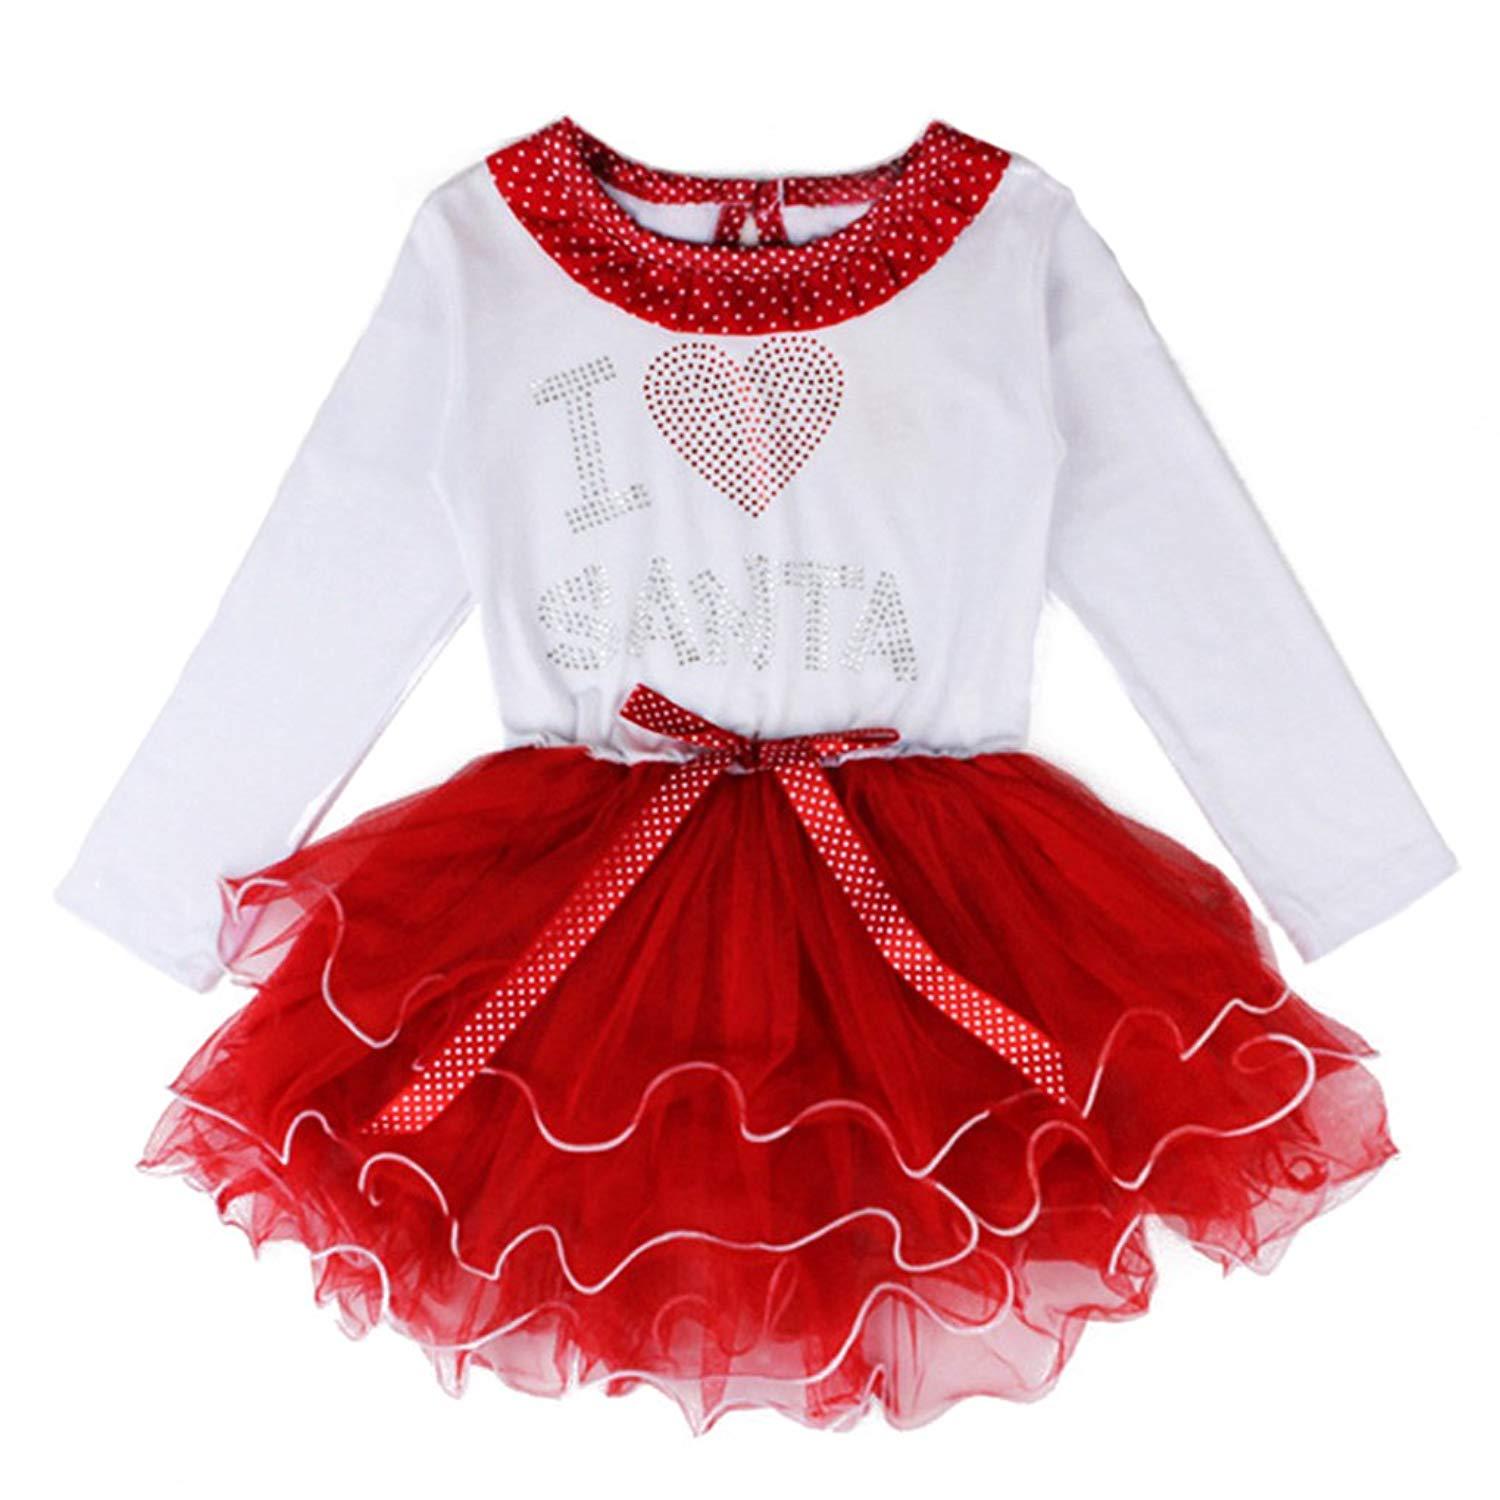 016a586b8 Get Quotations · Dreamowl Little Girls' Red Dot Santa Claus Applique Bow  Ruffle Dress